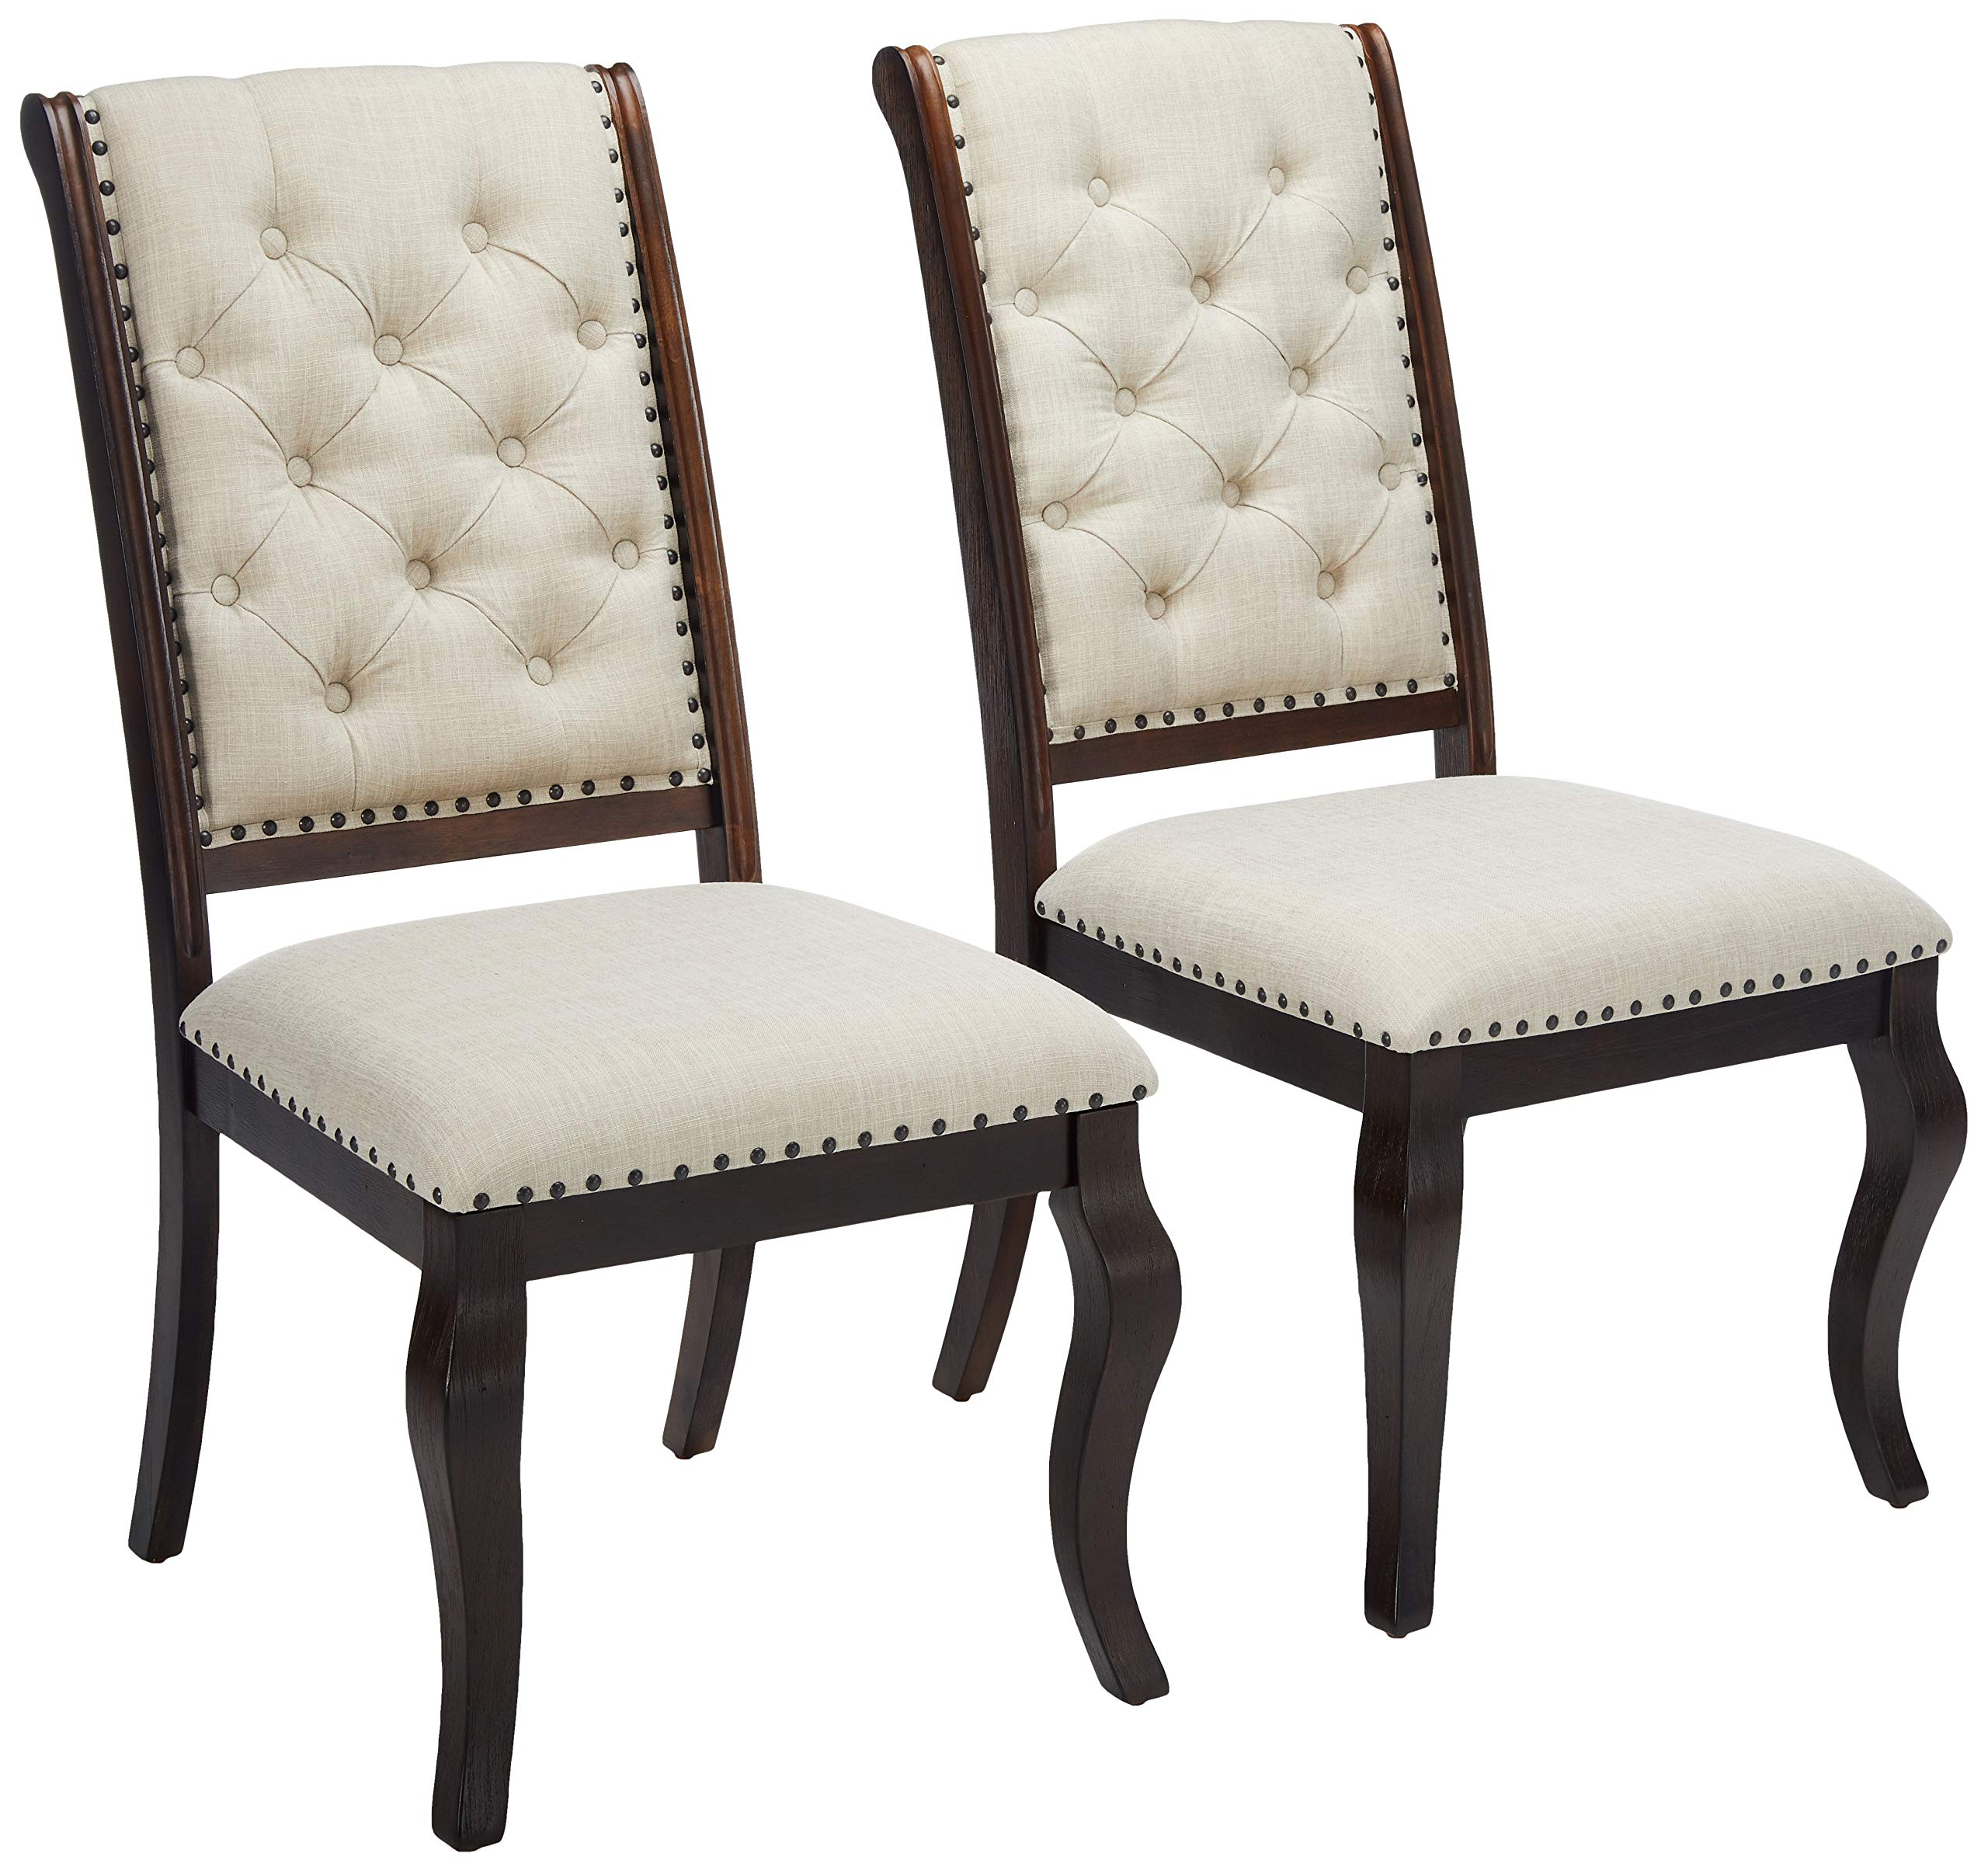 Glen Cove Dining Chairs with Button Tufting and Nailhead Trim Antique Java and Cream (Set of 2) by Scott Living